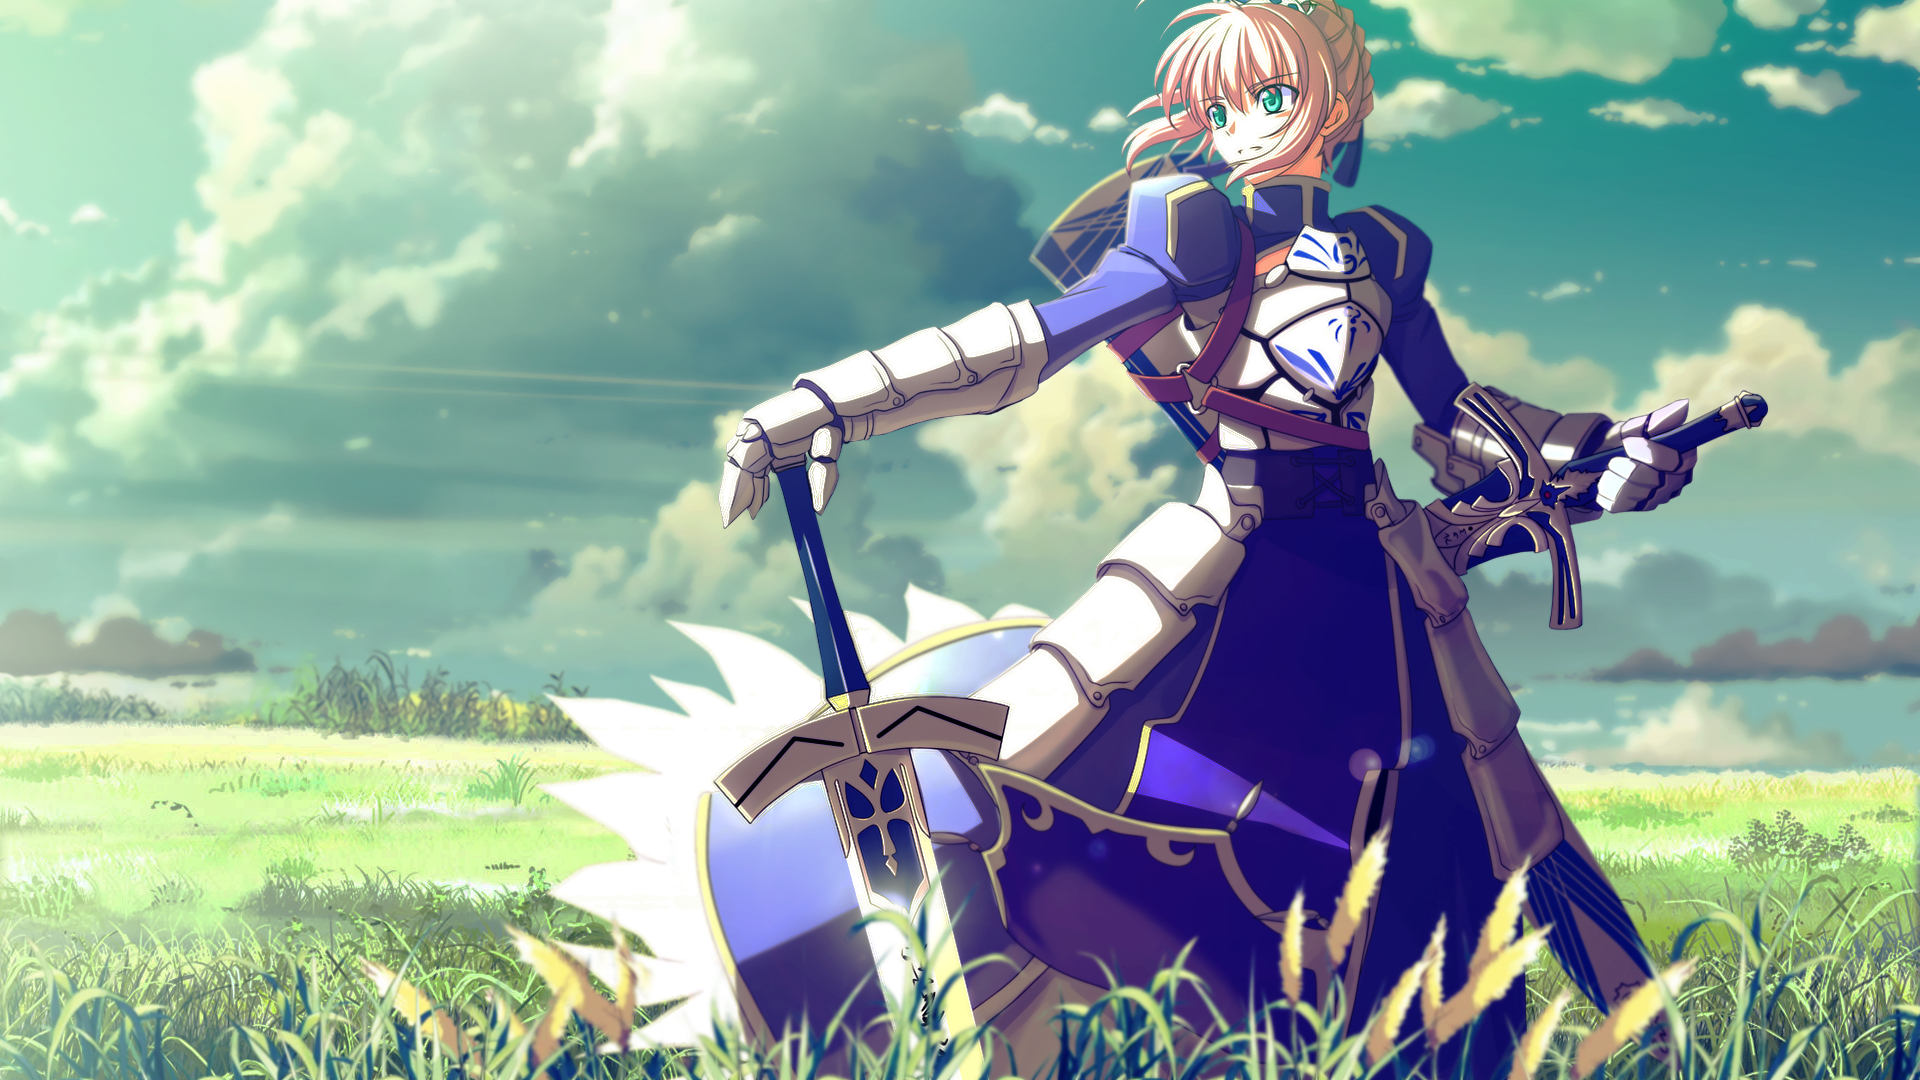 fsn___saber_wallpaper_by_pt_desu-d5gkjre